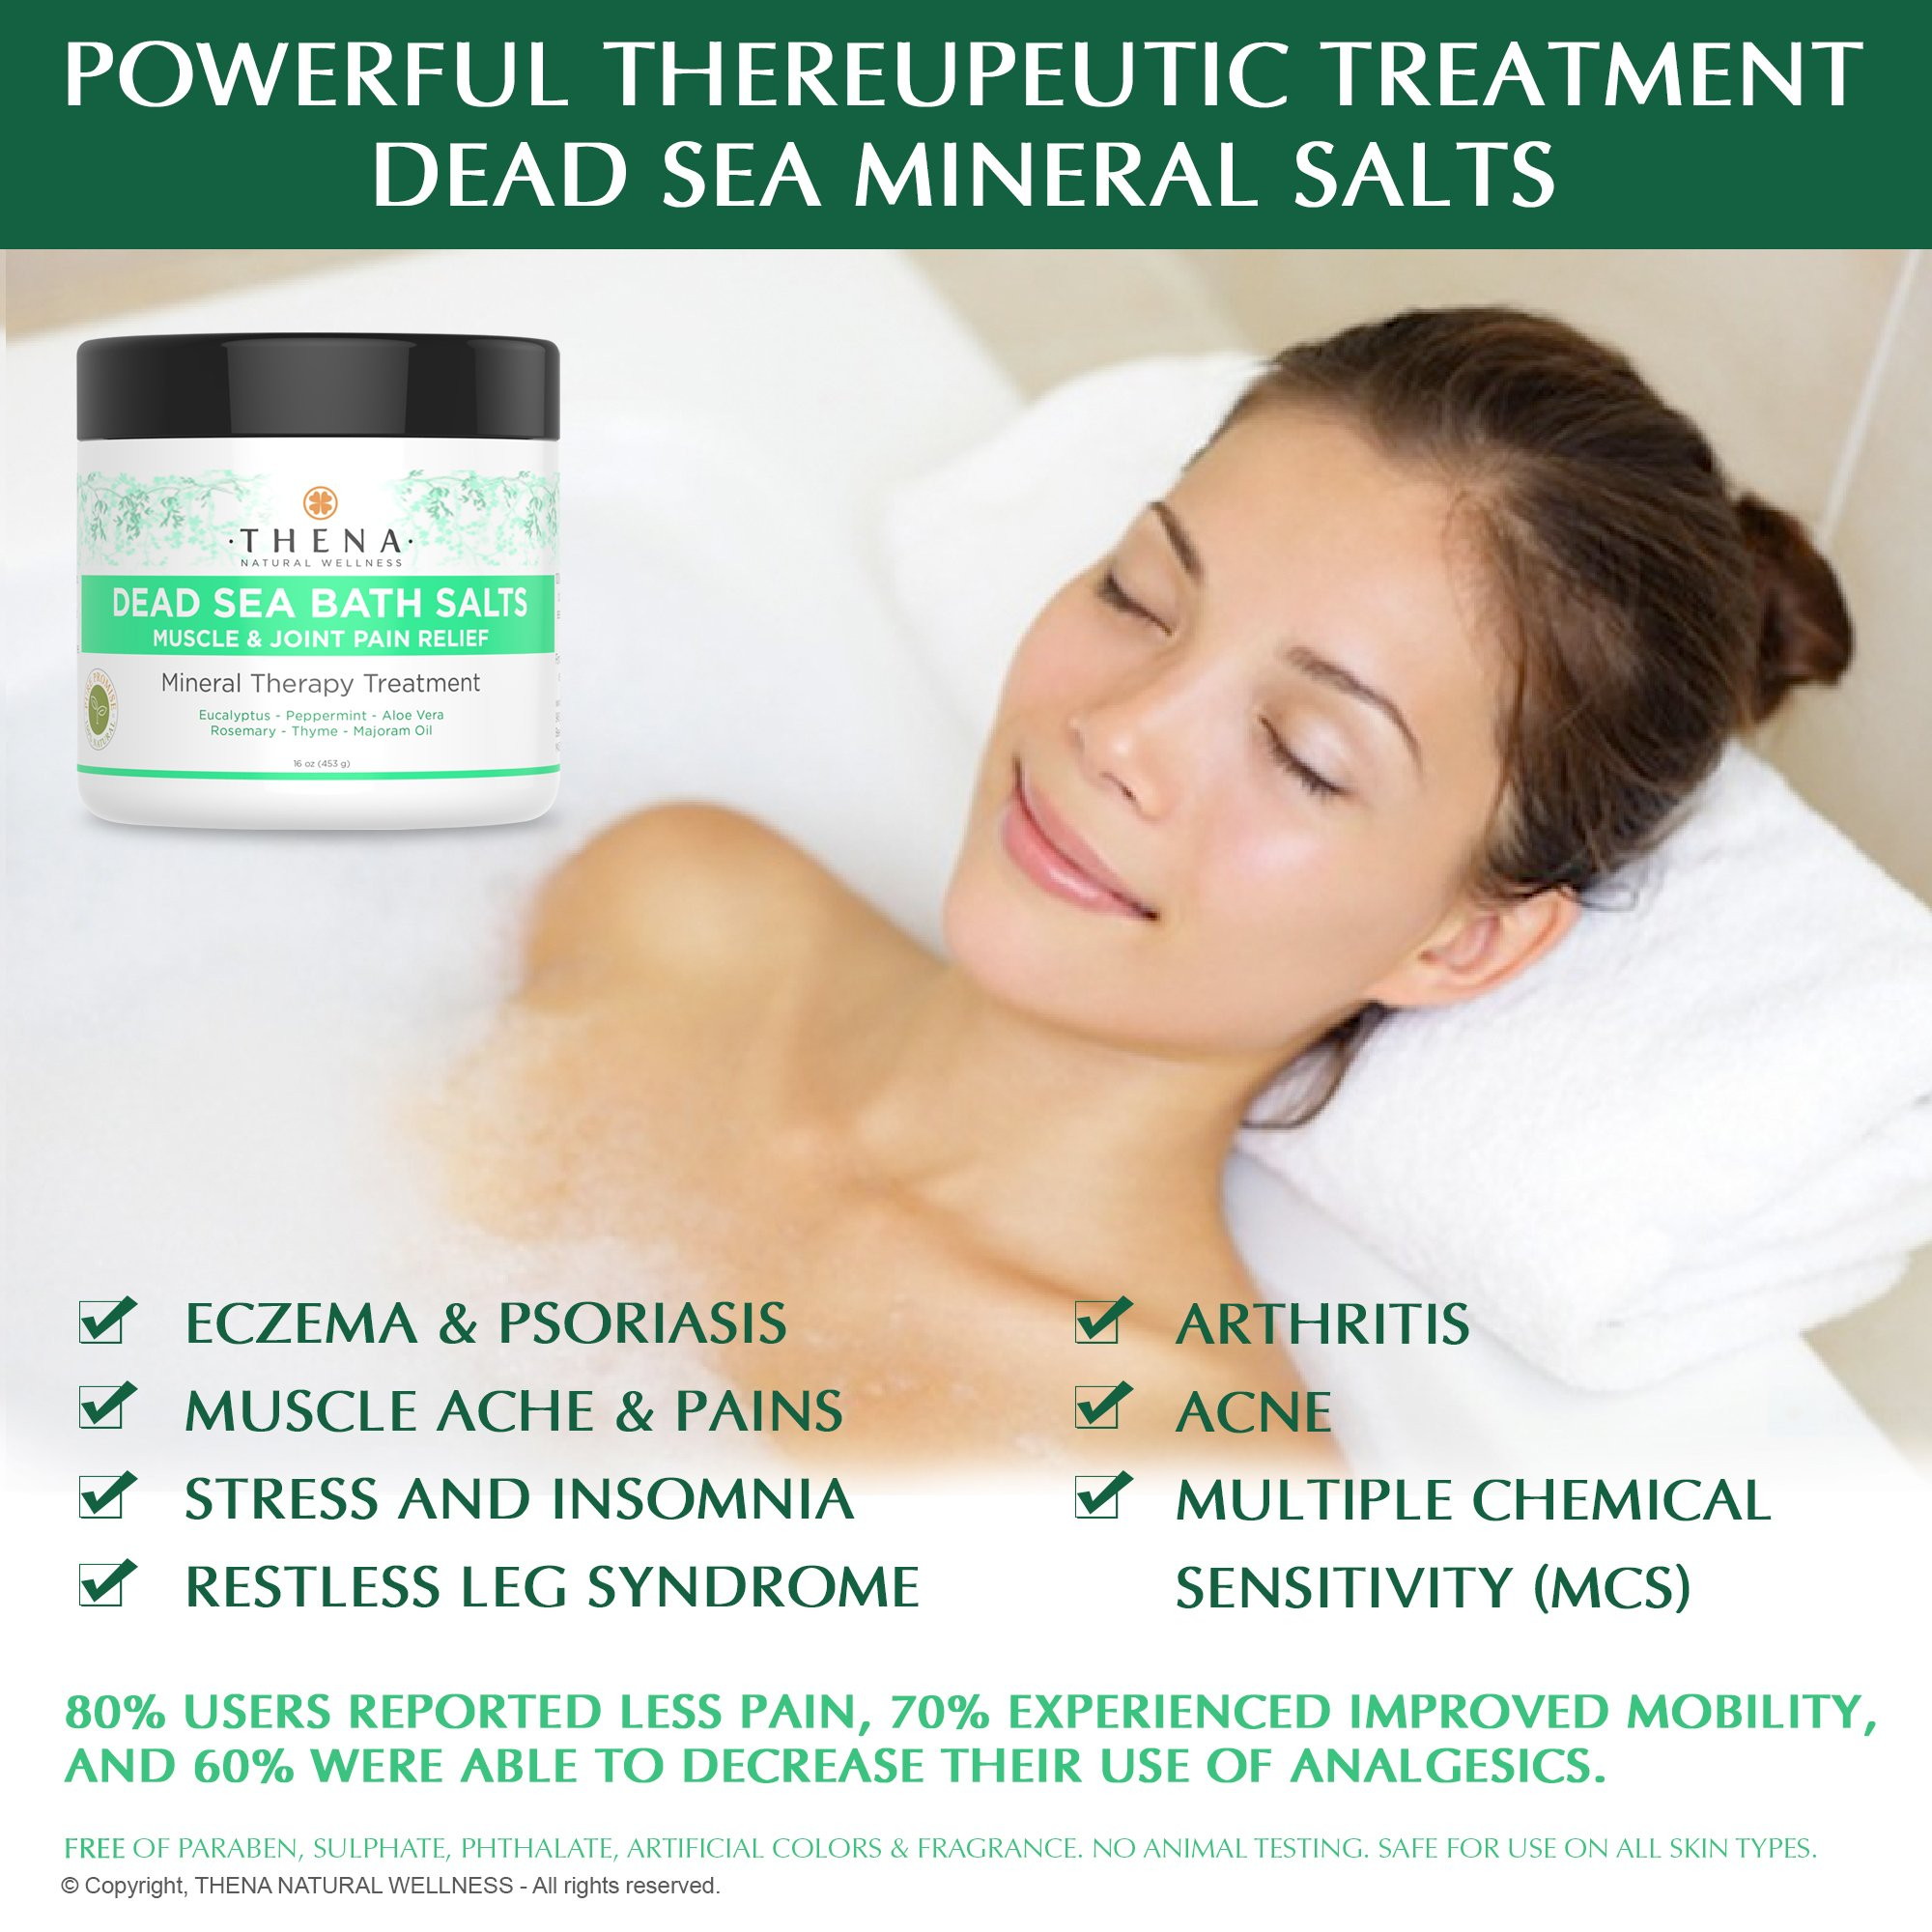 Organic Joint & Muscle Relief Soak, Natural Arthritis Remedies With Arnica & Stress Relieve Essential Oils, Best Spa Bath Sea Salts Product For Relaxation, Soothe Back Neck Shoulder Pain Aches Tension by THENA Natural Wellness (Image #2)